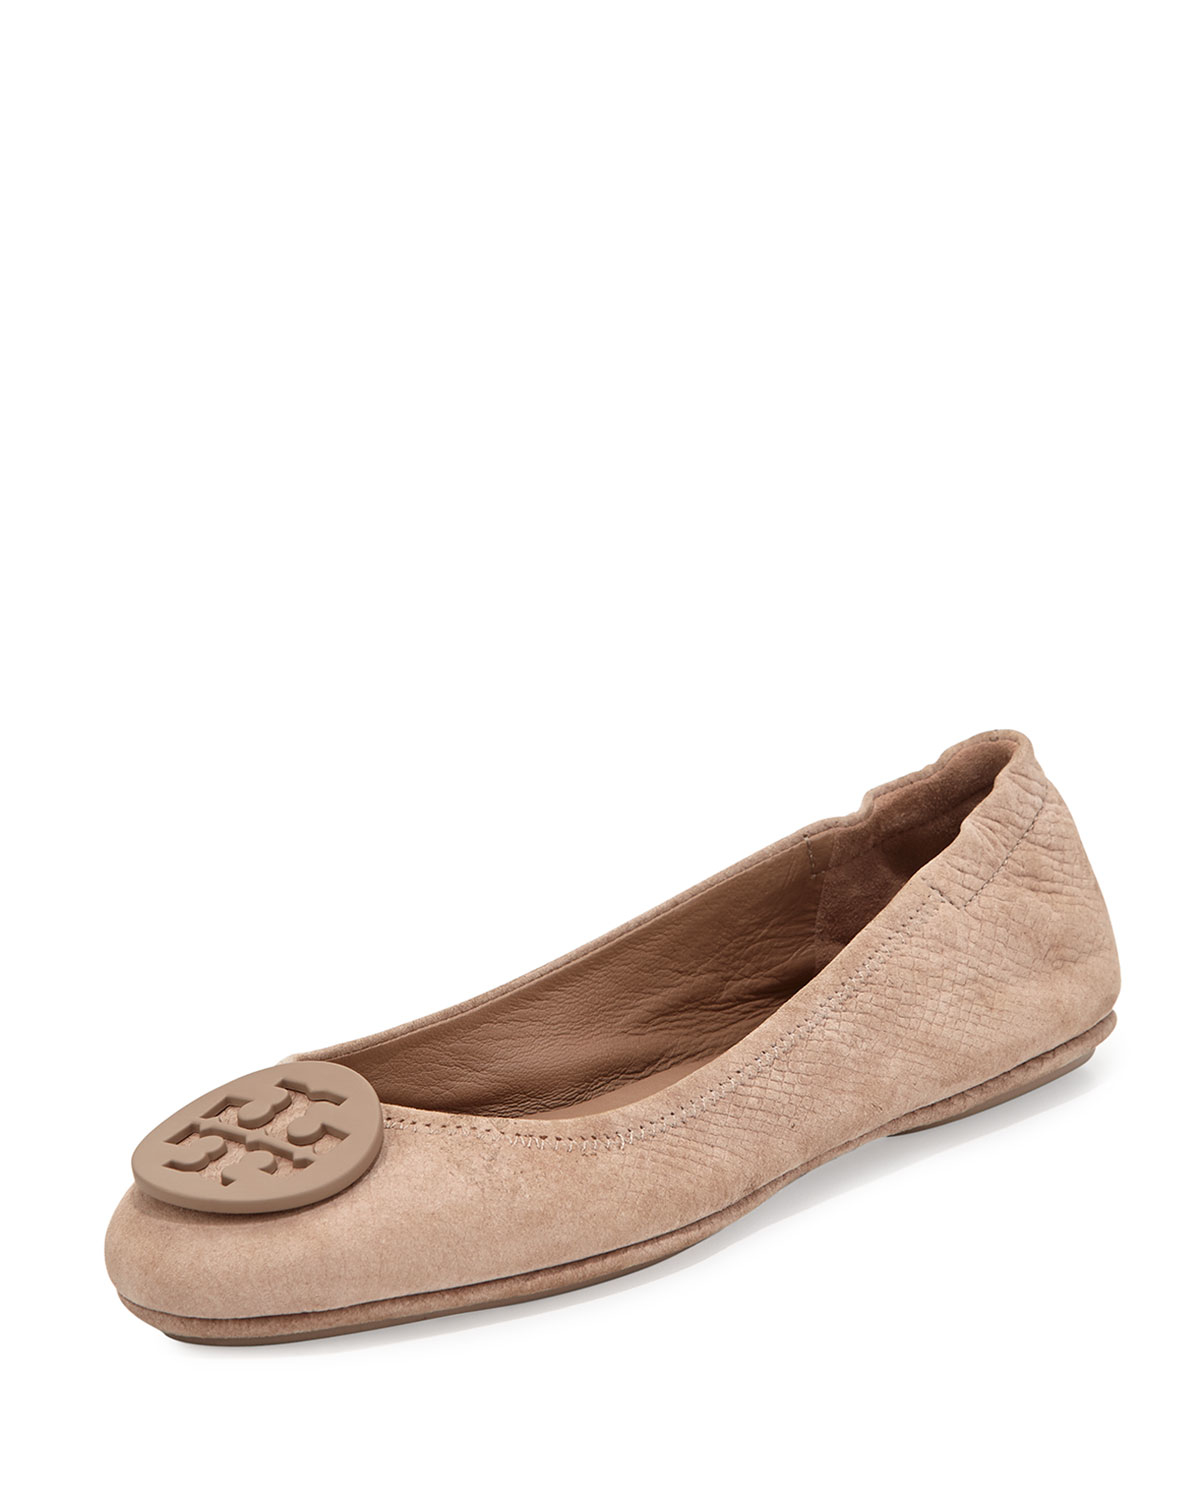 Tory Burch Travel Logo Ballet Flat In Brown Taupe  Lyst